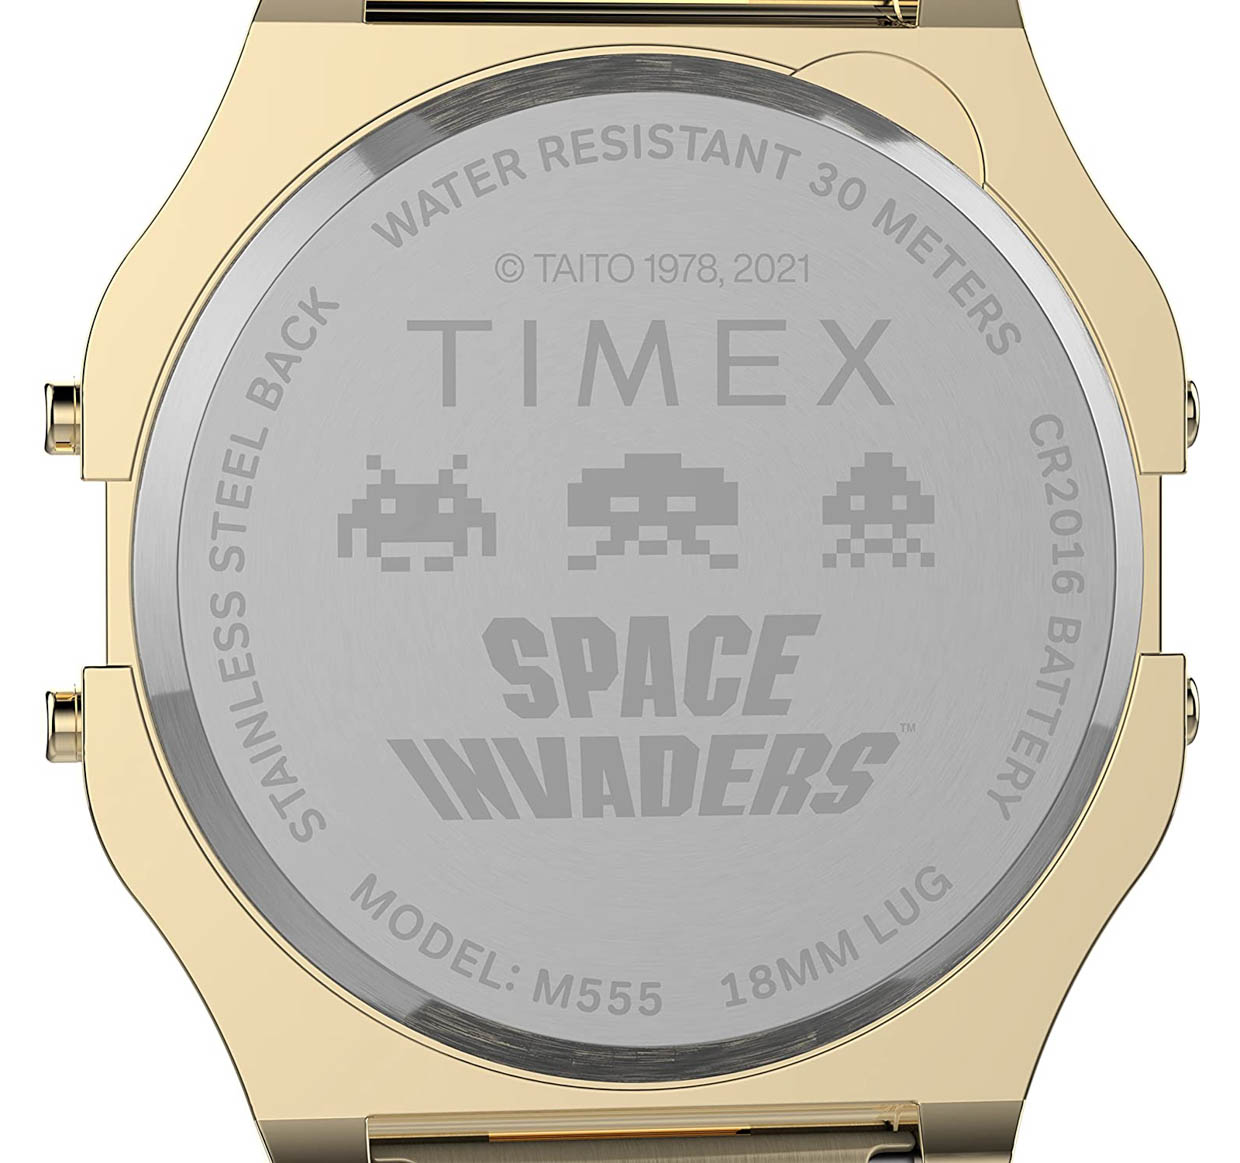 Timex T80 x Space Invaders Watches